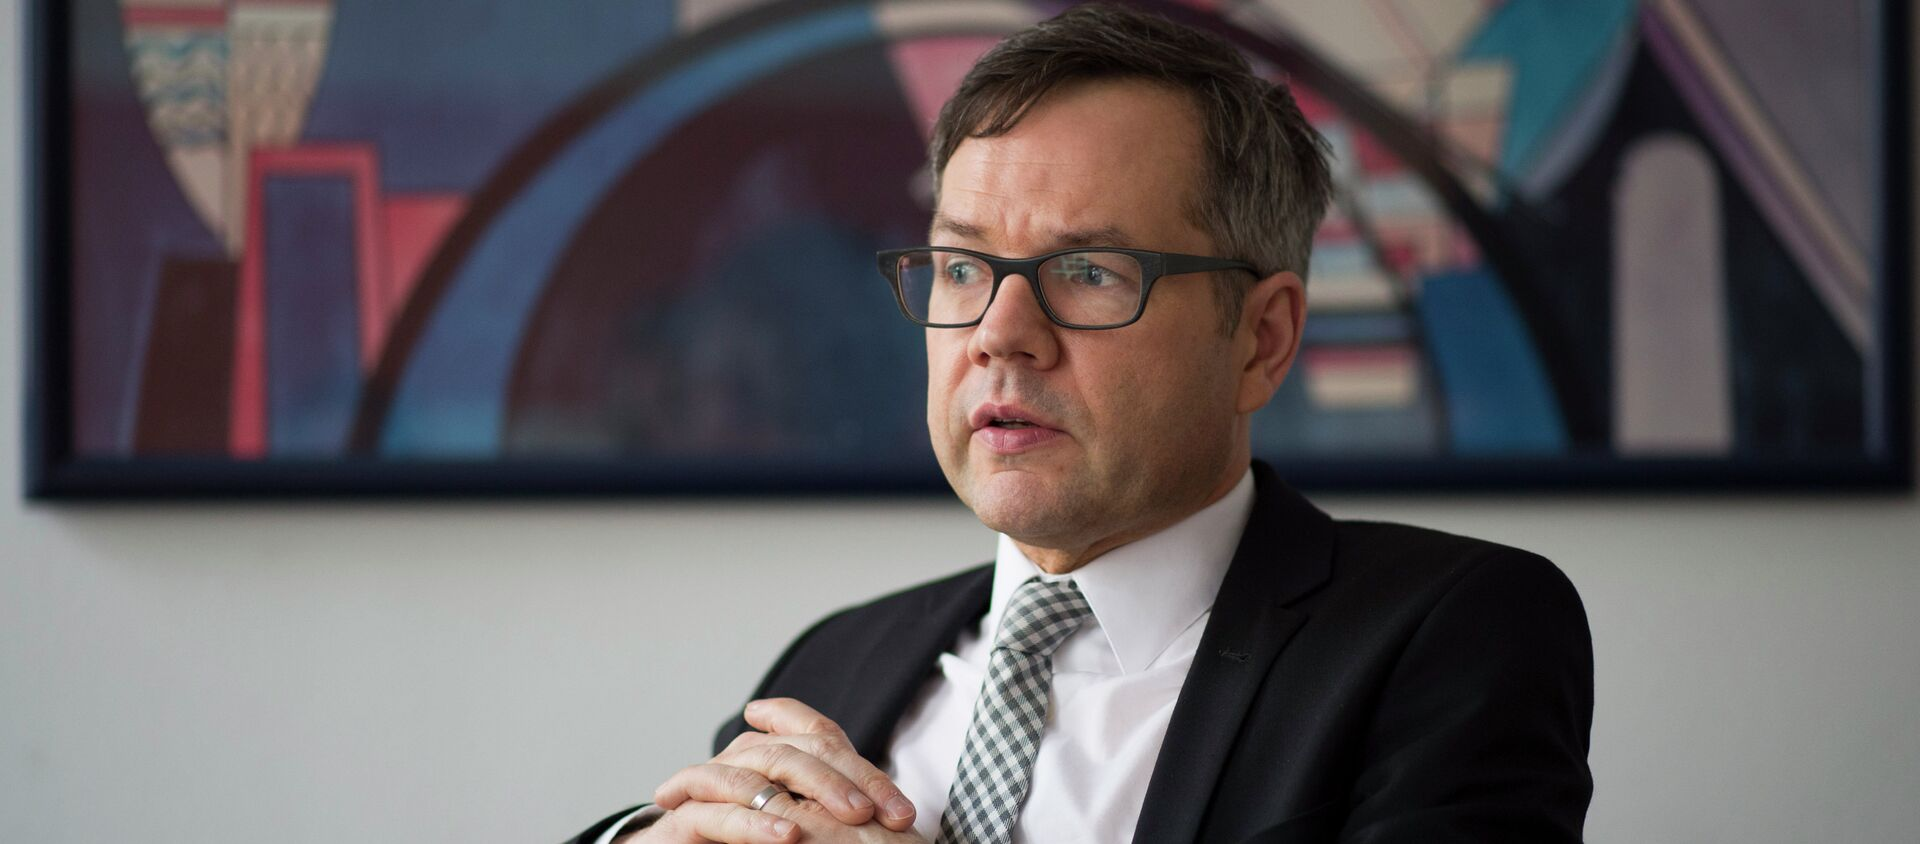 Minister of State of the Foreign Ministry Michael Roth - Sputnik International, 1920, 11.05.2021